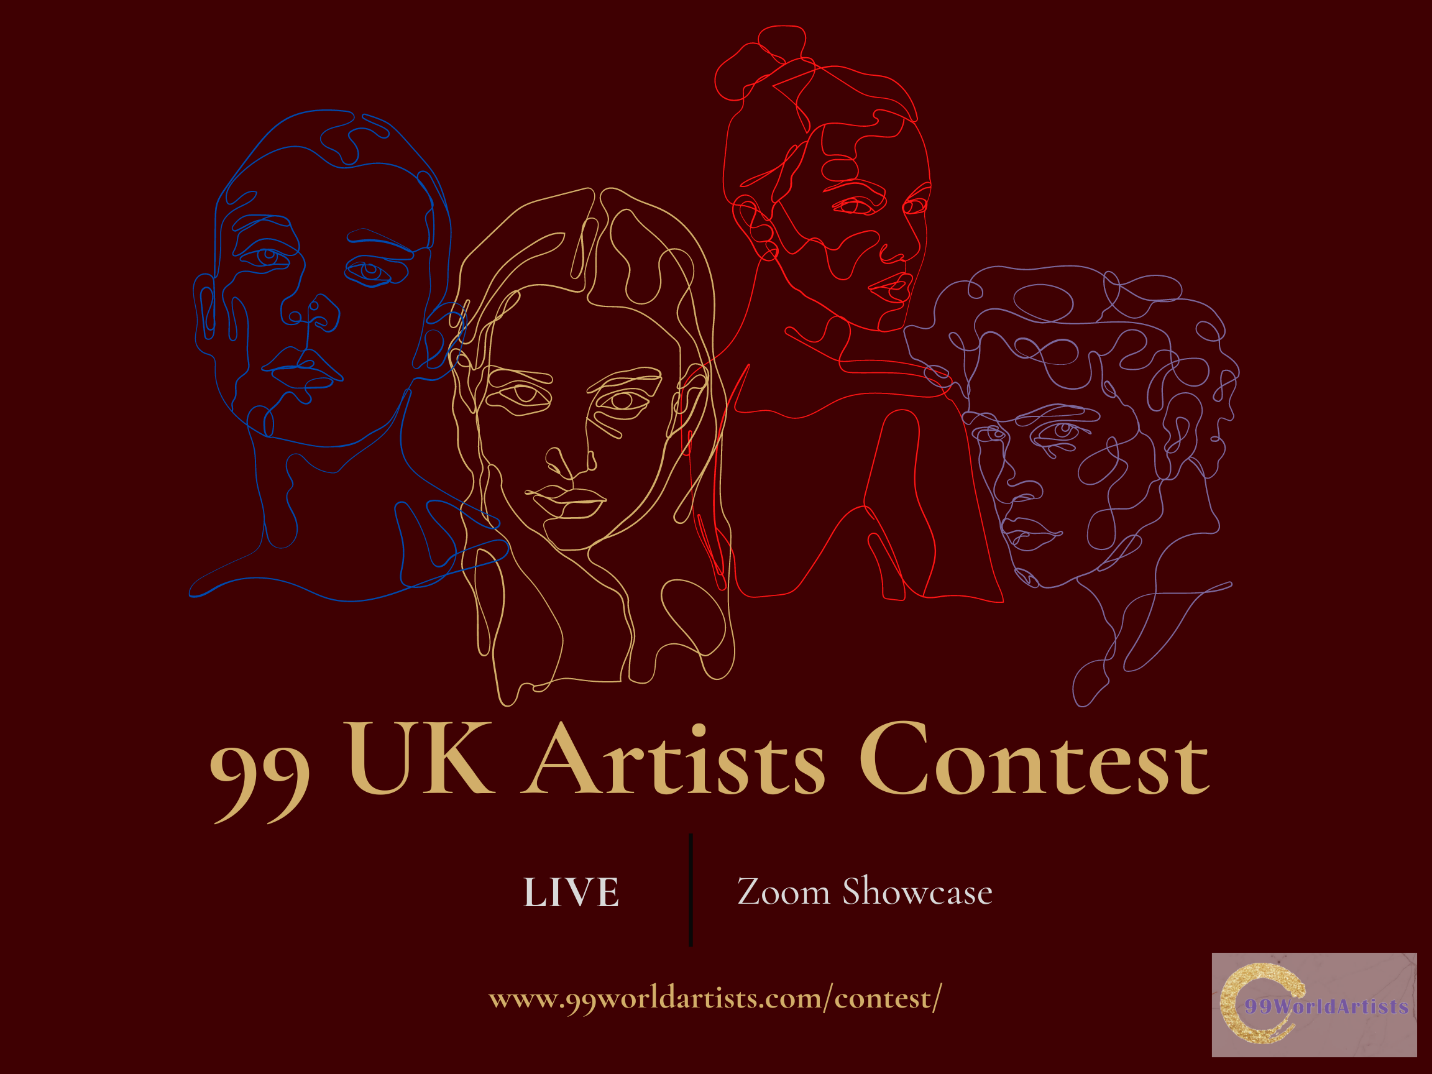 99 WORLD ARTISTS Launch a Unique ONLINE LIVE EVENT to Select ARTISTS to Represent the UKEPRESENT THE UK